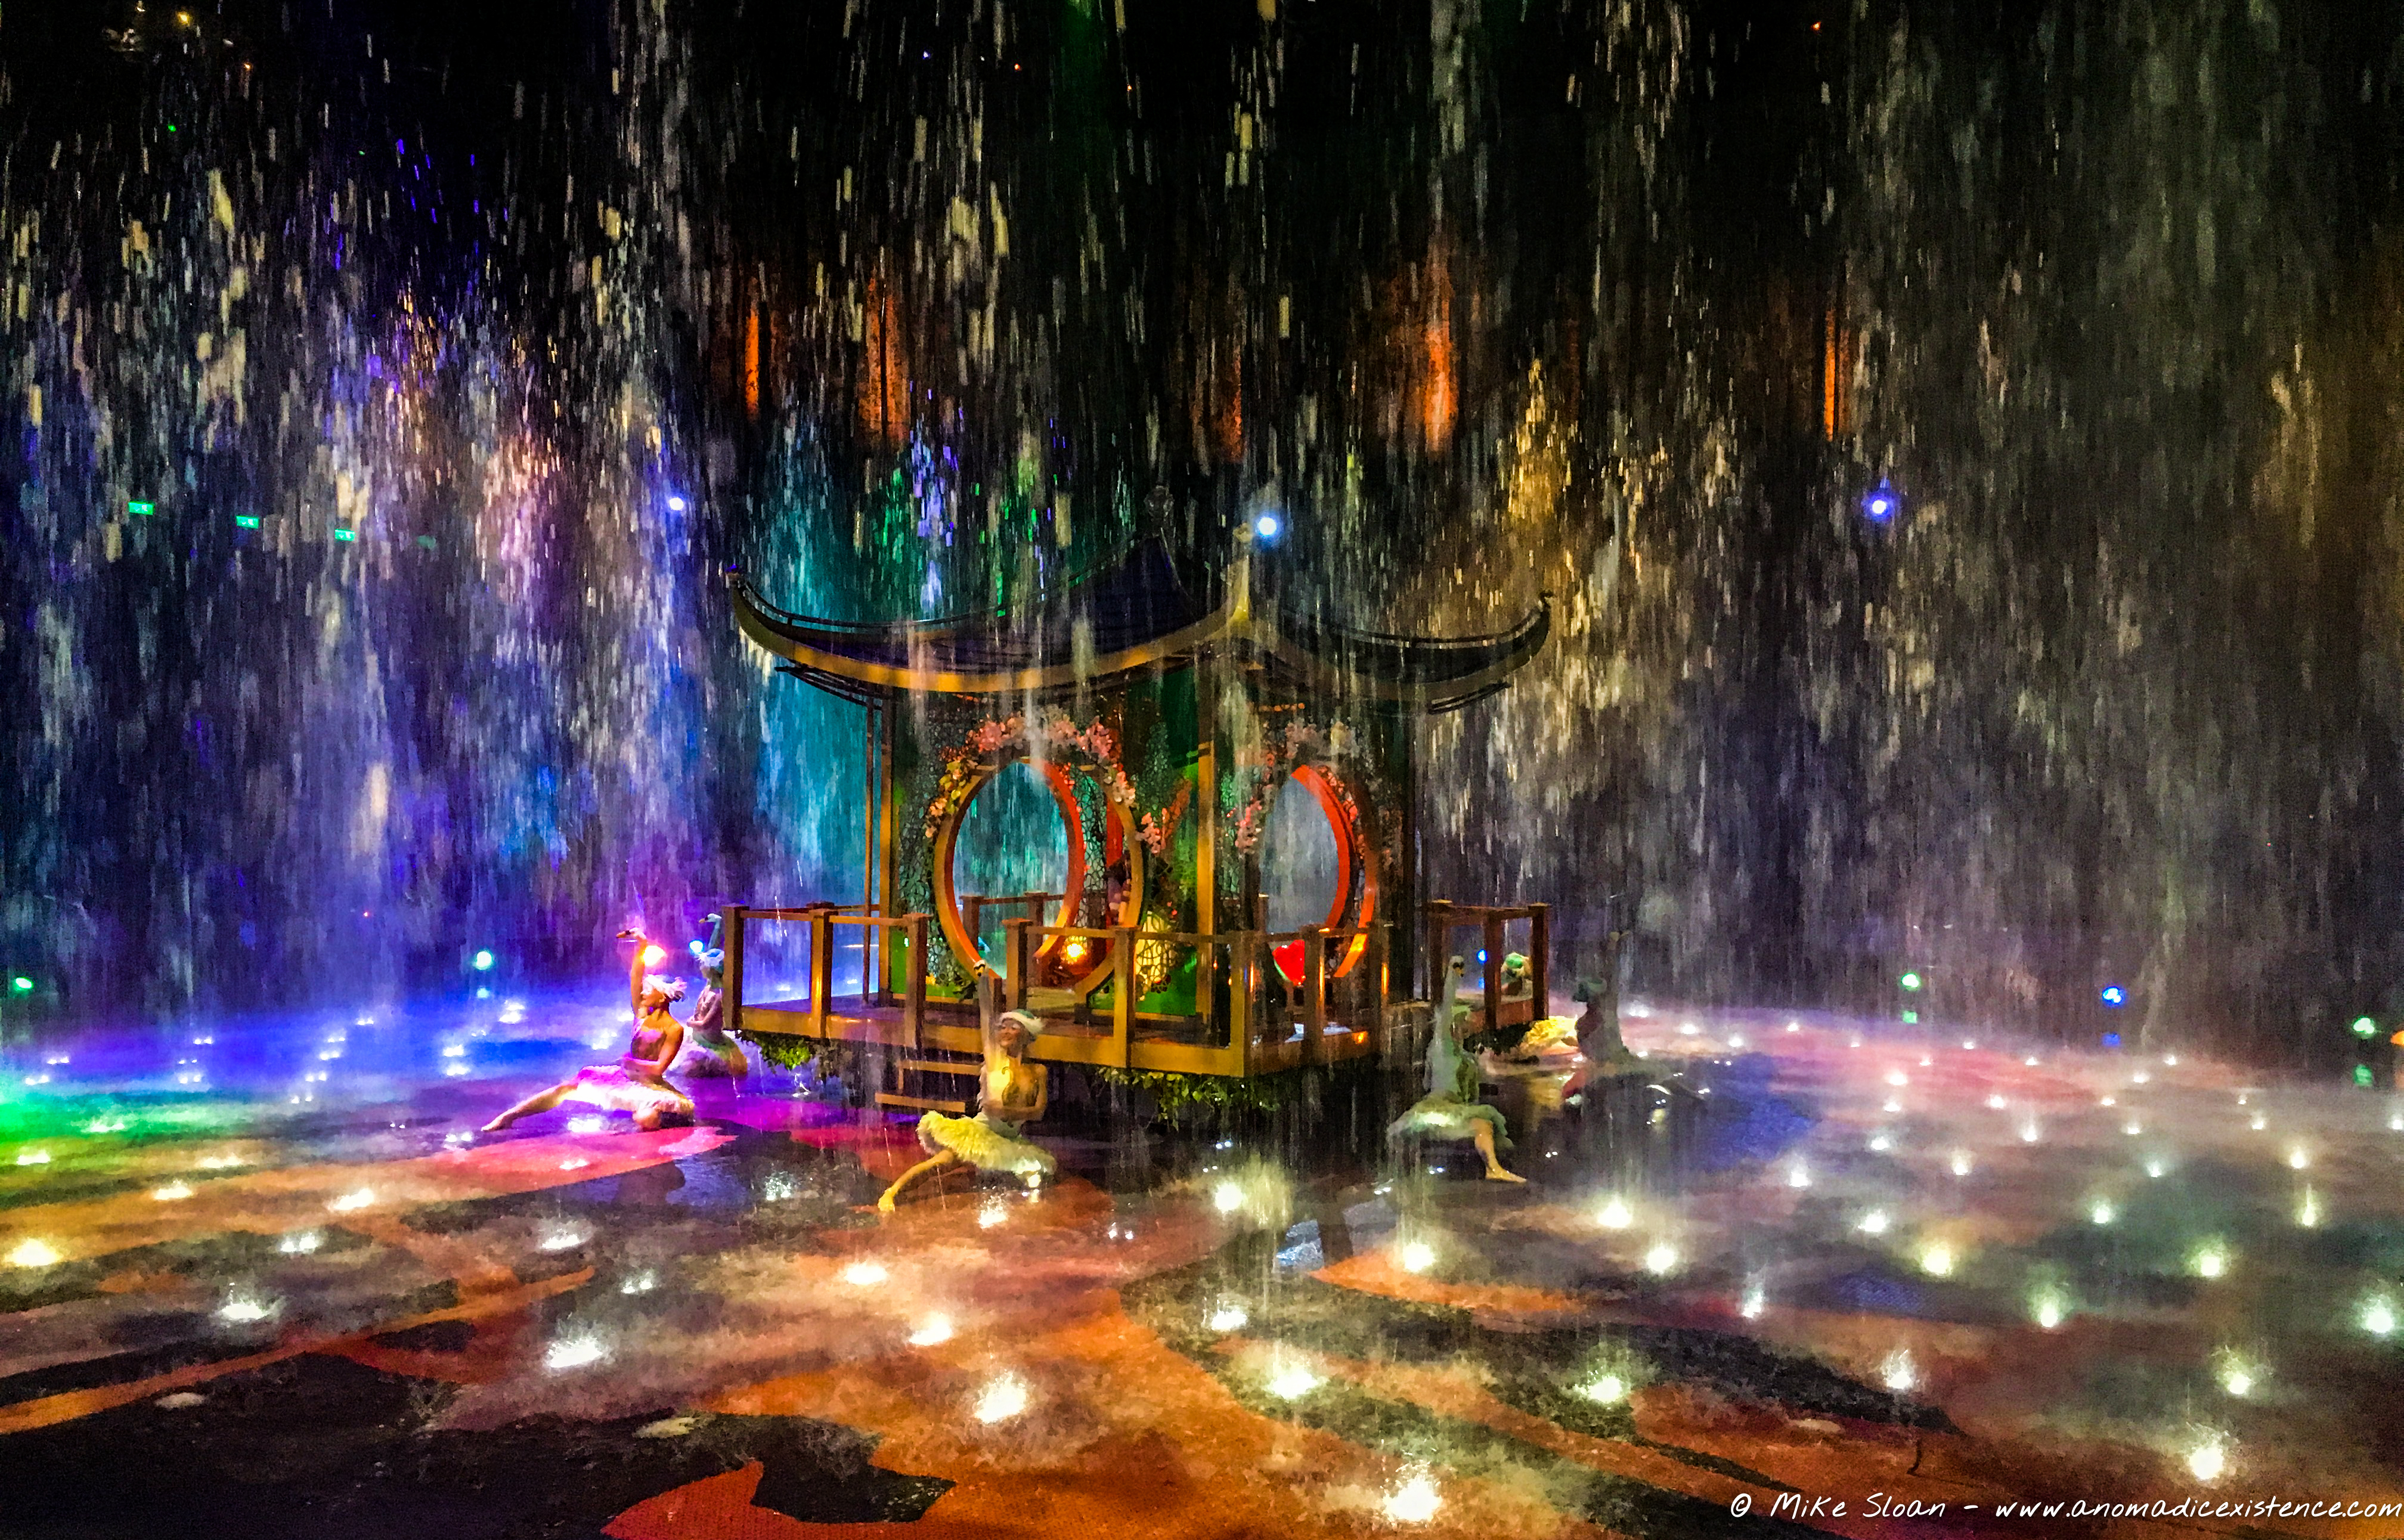 The House of Dancing Water Show in Macau